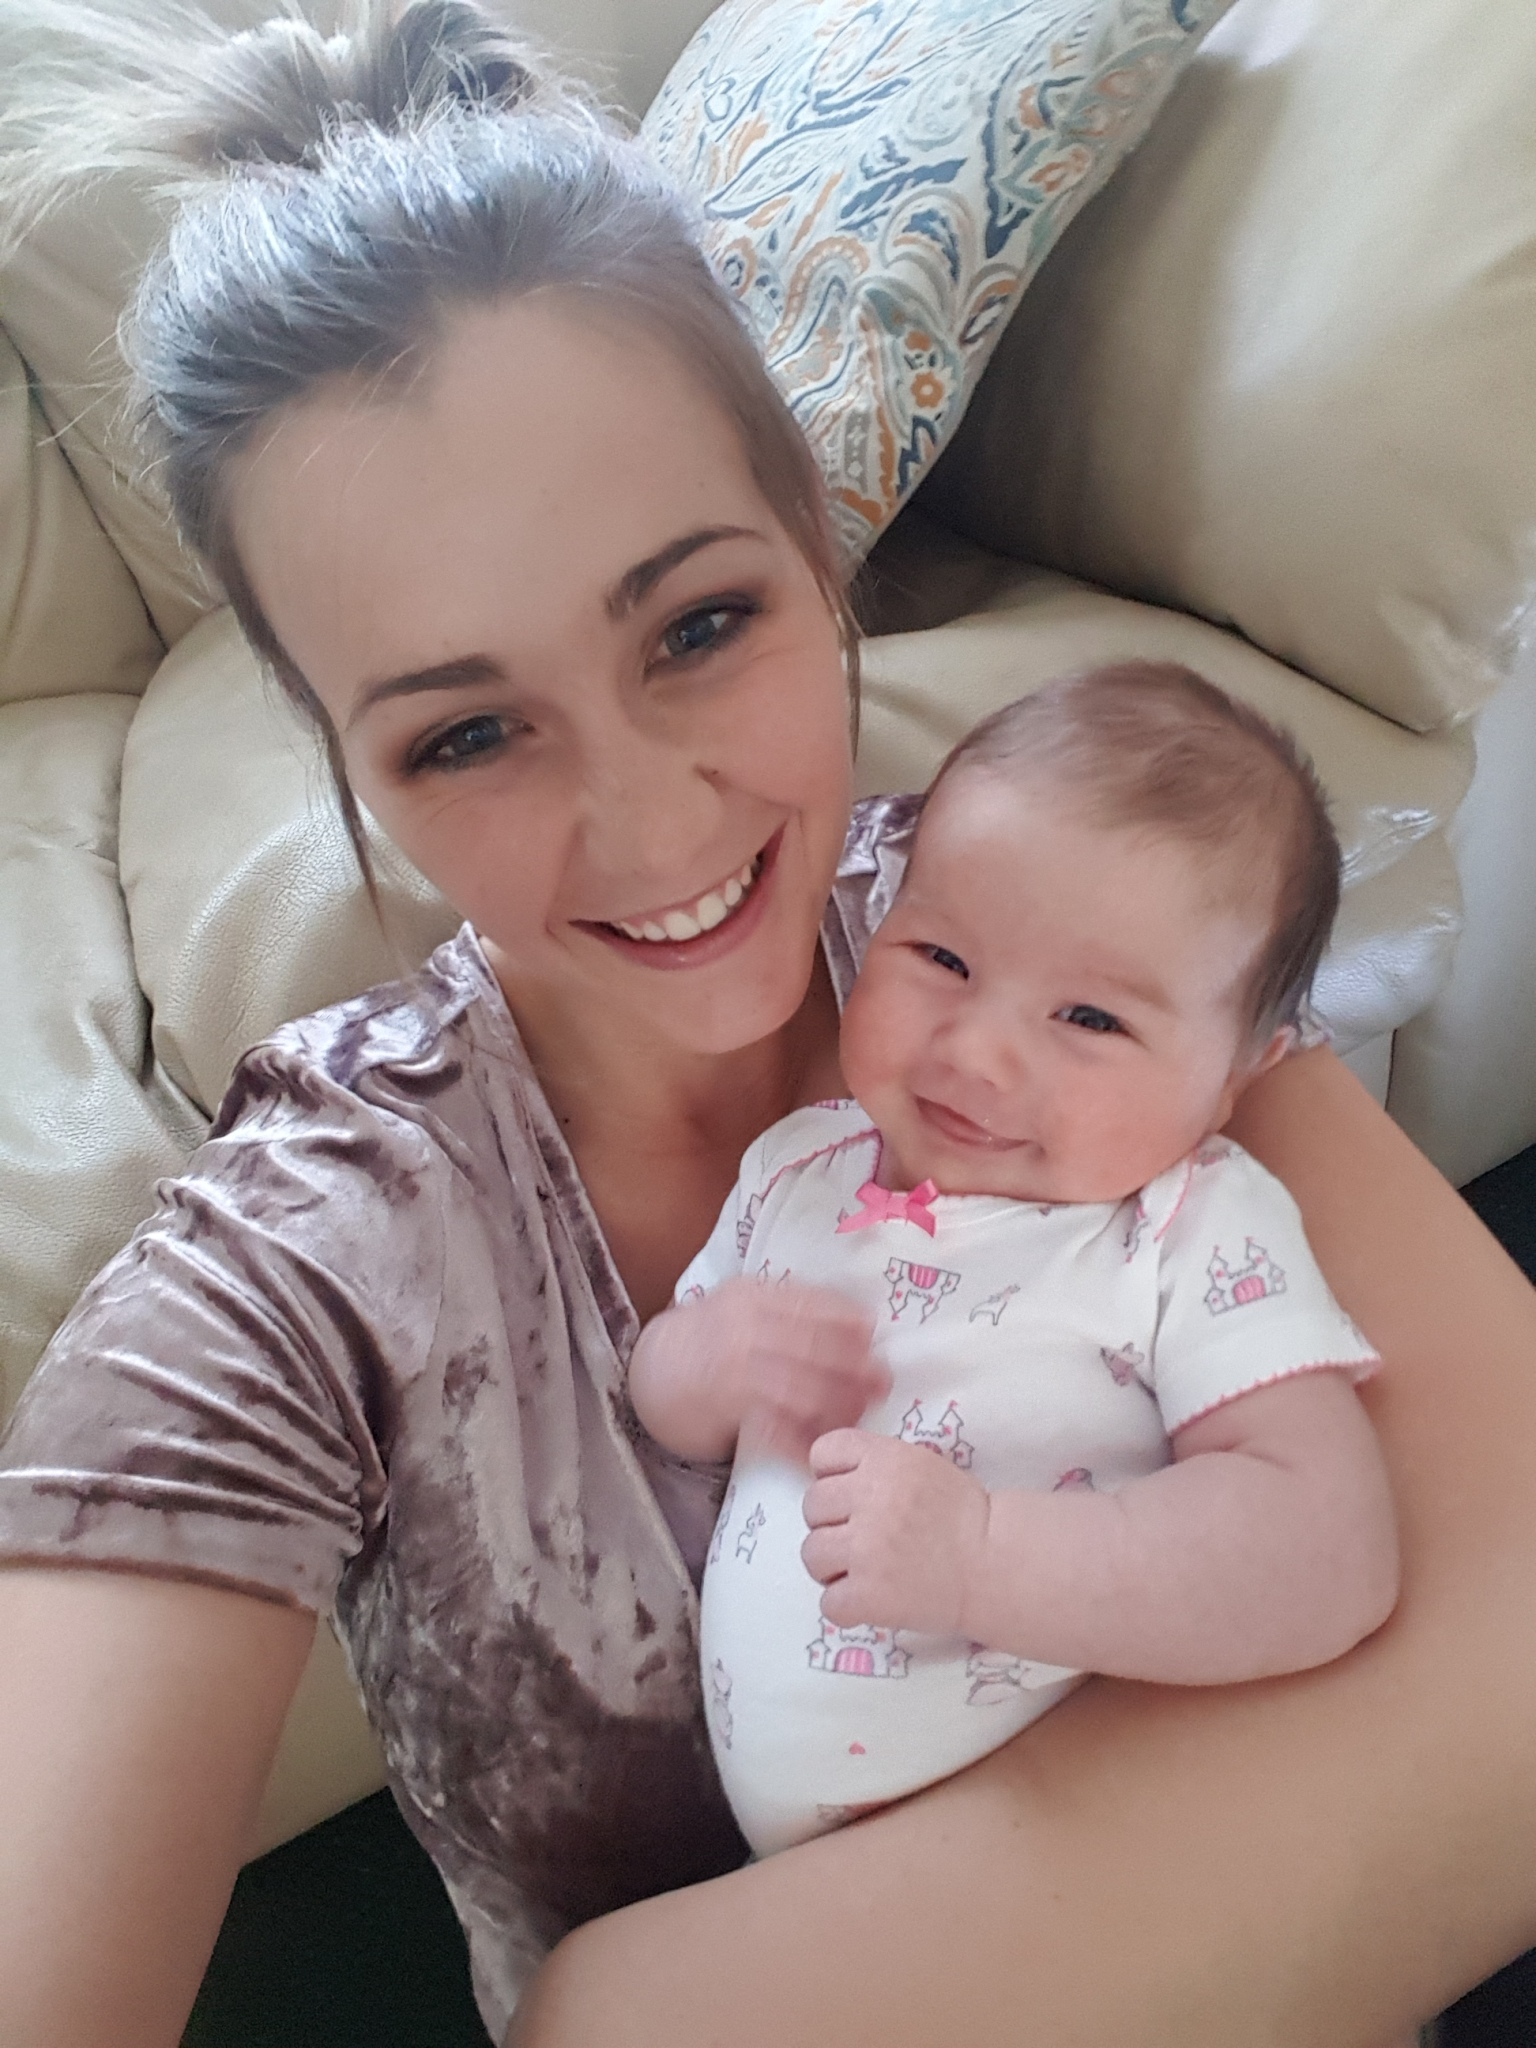 woman and a baby